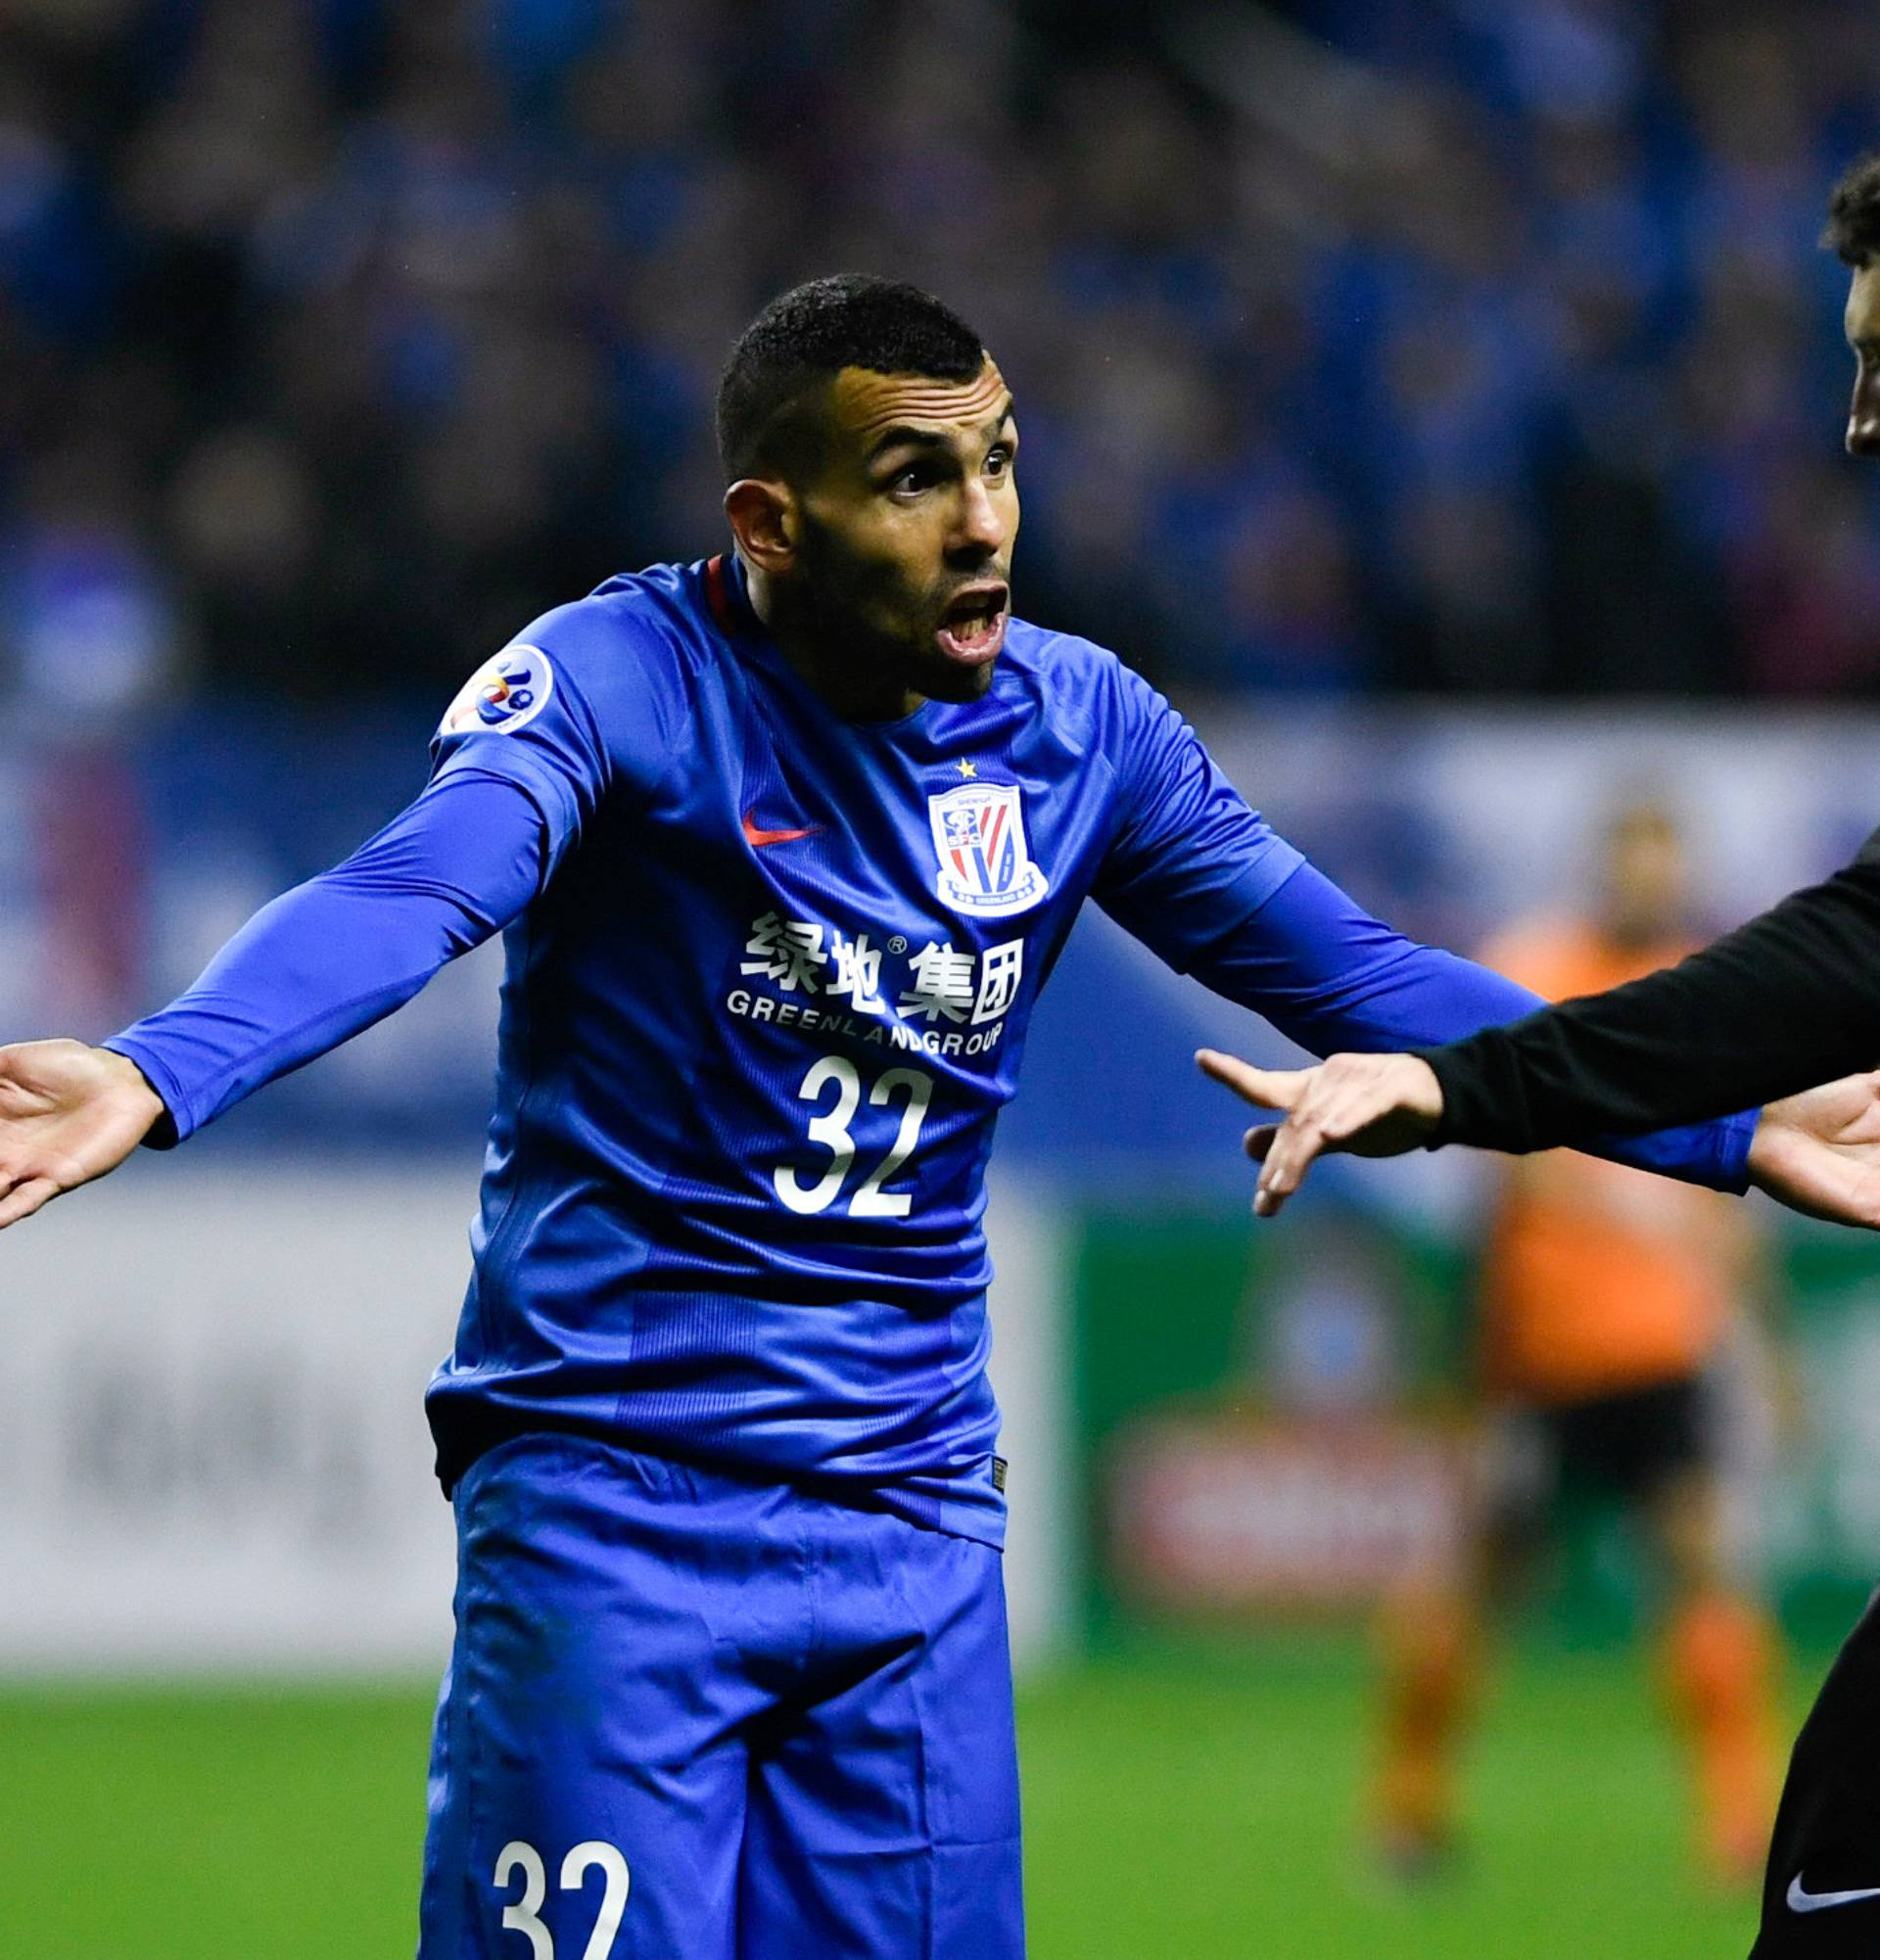 Shanghai Shenhua's Carlos Tevez reacts to a referee during the AFC Champions League 2017 play-off match between Shanghai Shenhua and Brisbane Roar in Shanghai